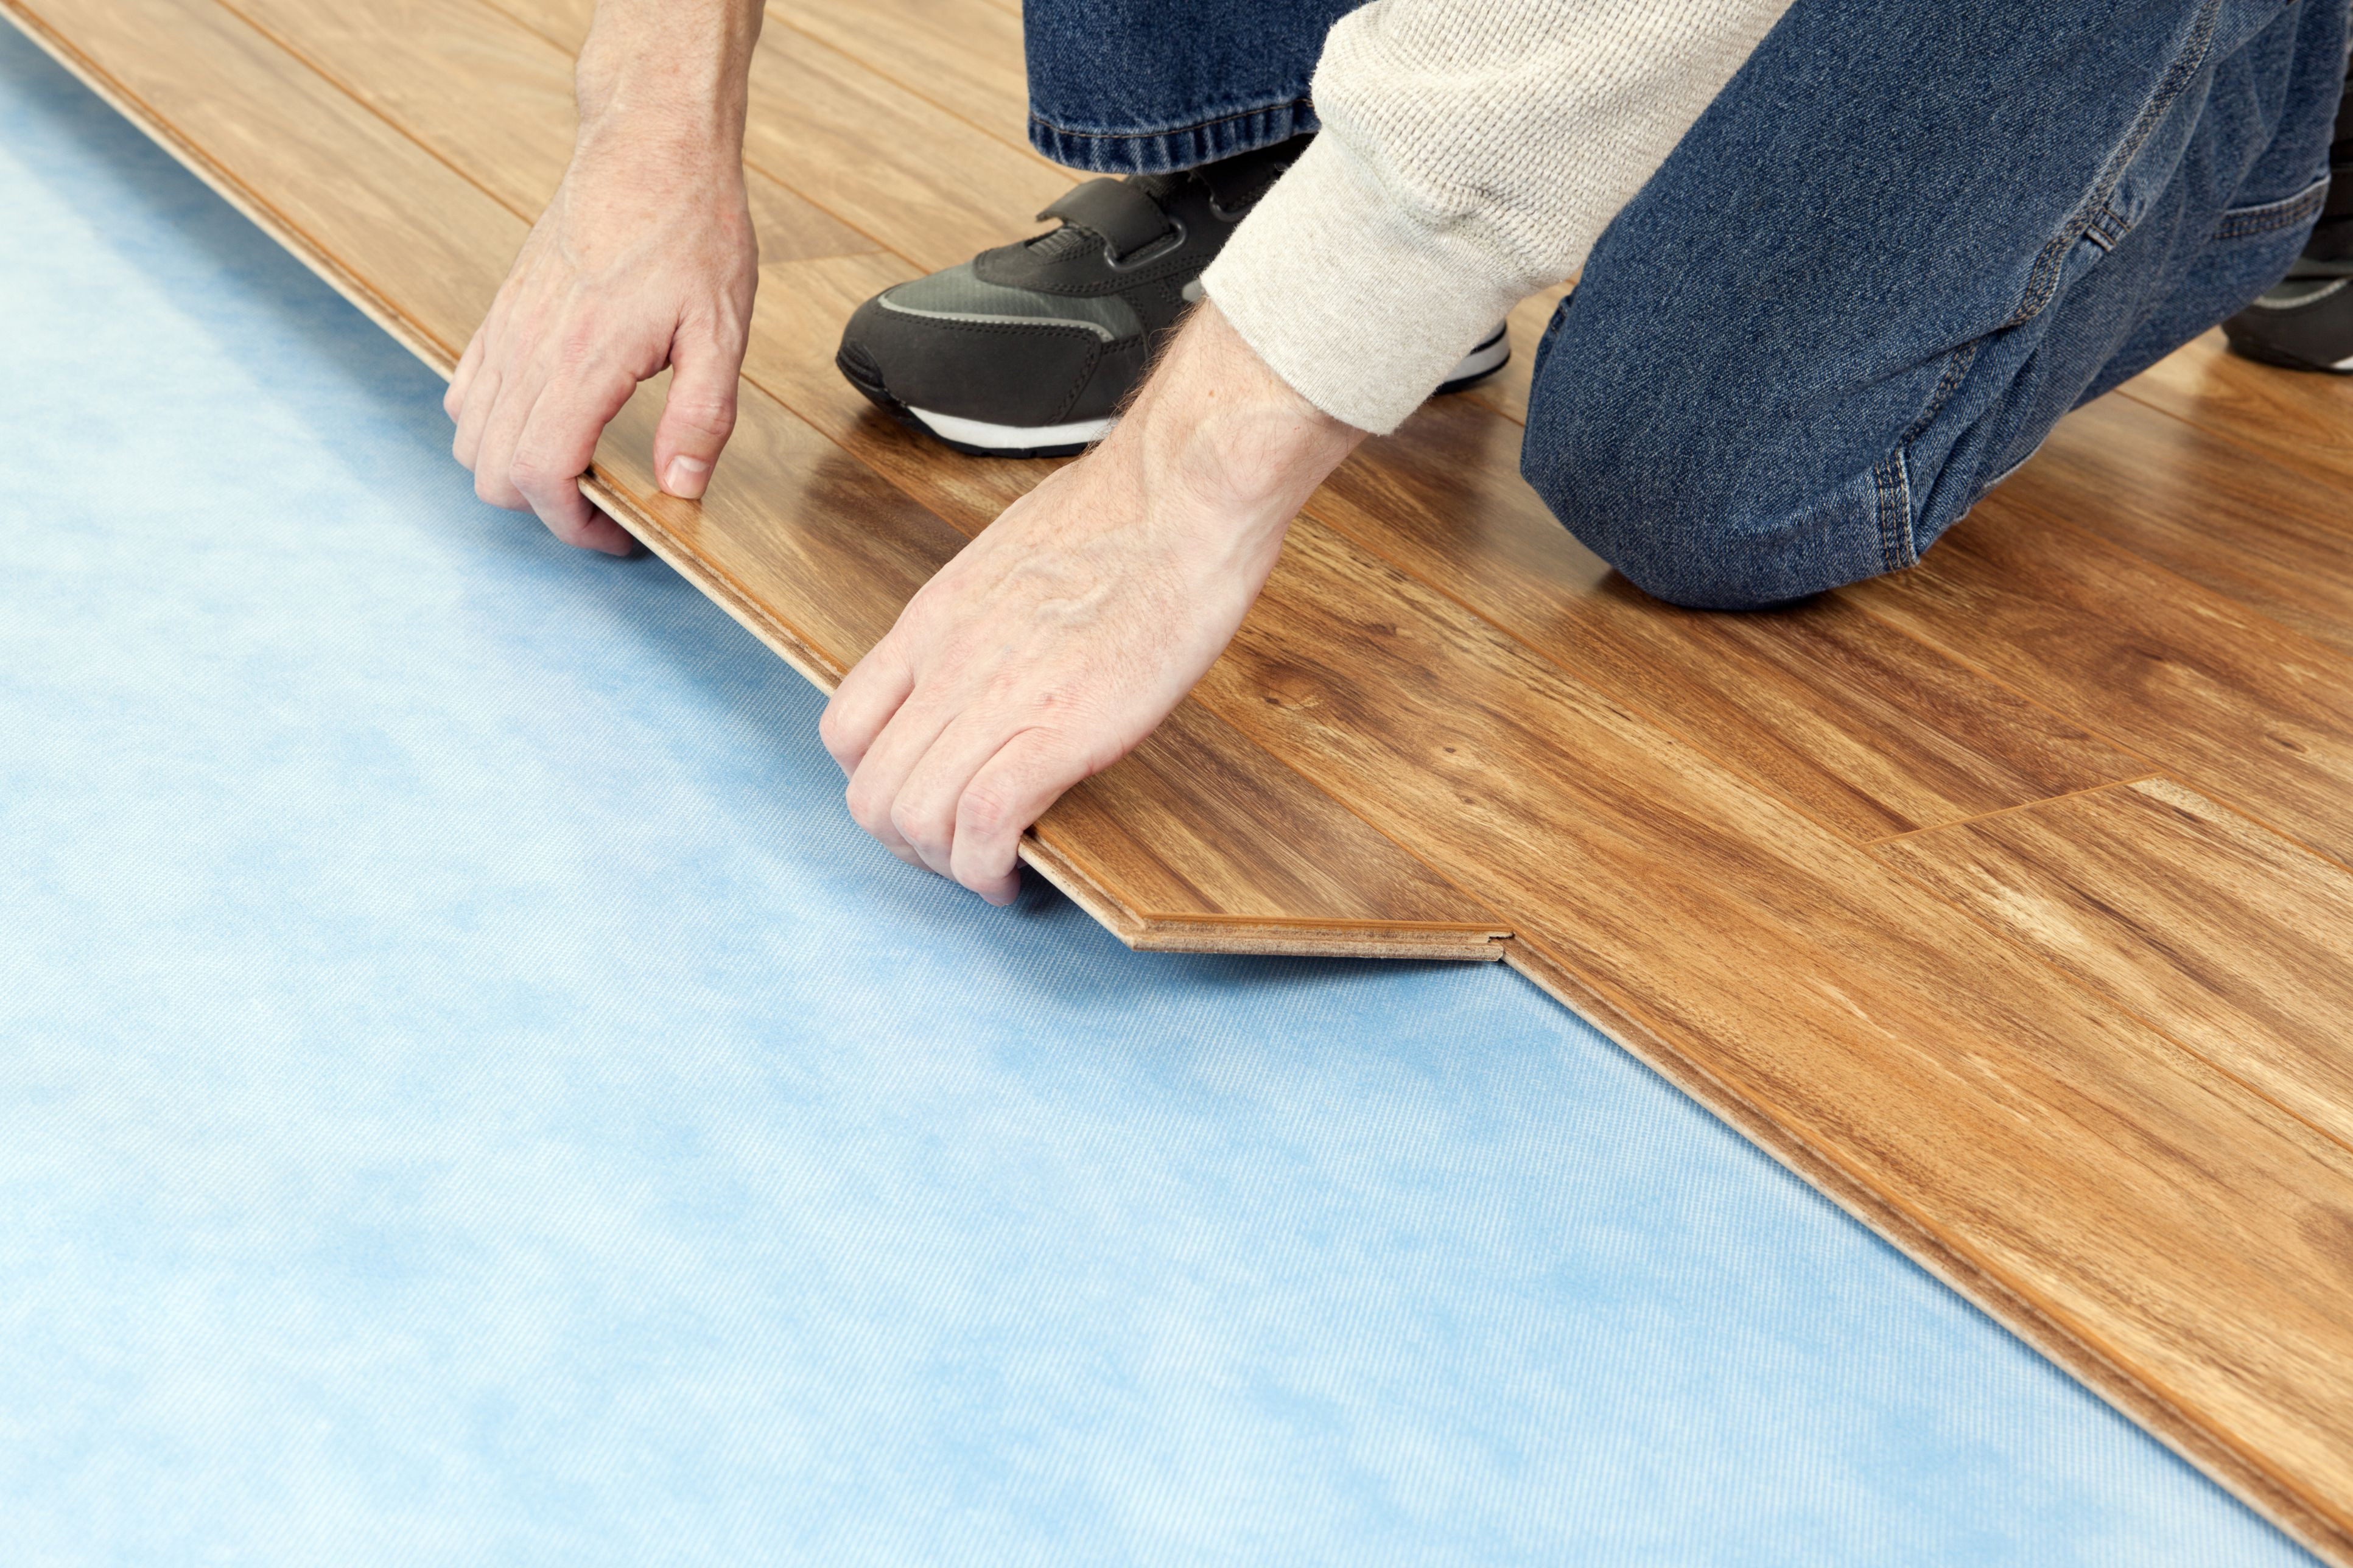 tools needed for hardwood flooring of flooring underlayment the basics within new floor installation 185270632 582b722c3df78c6f6af0a8ab